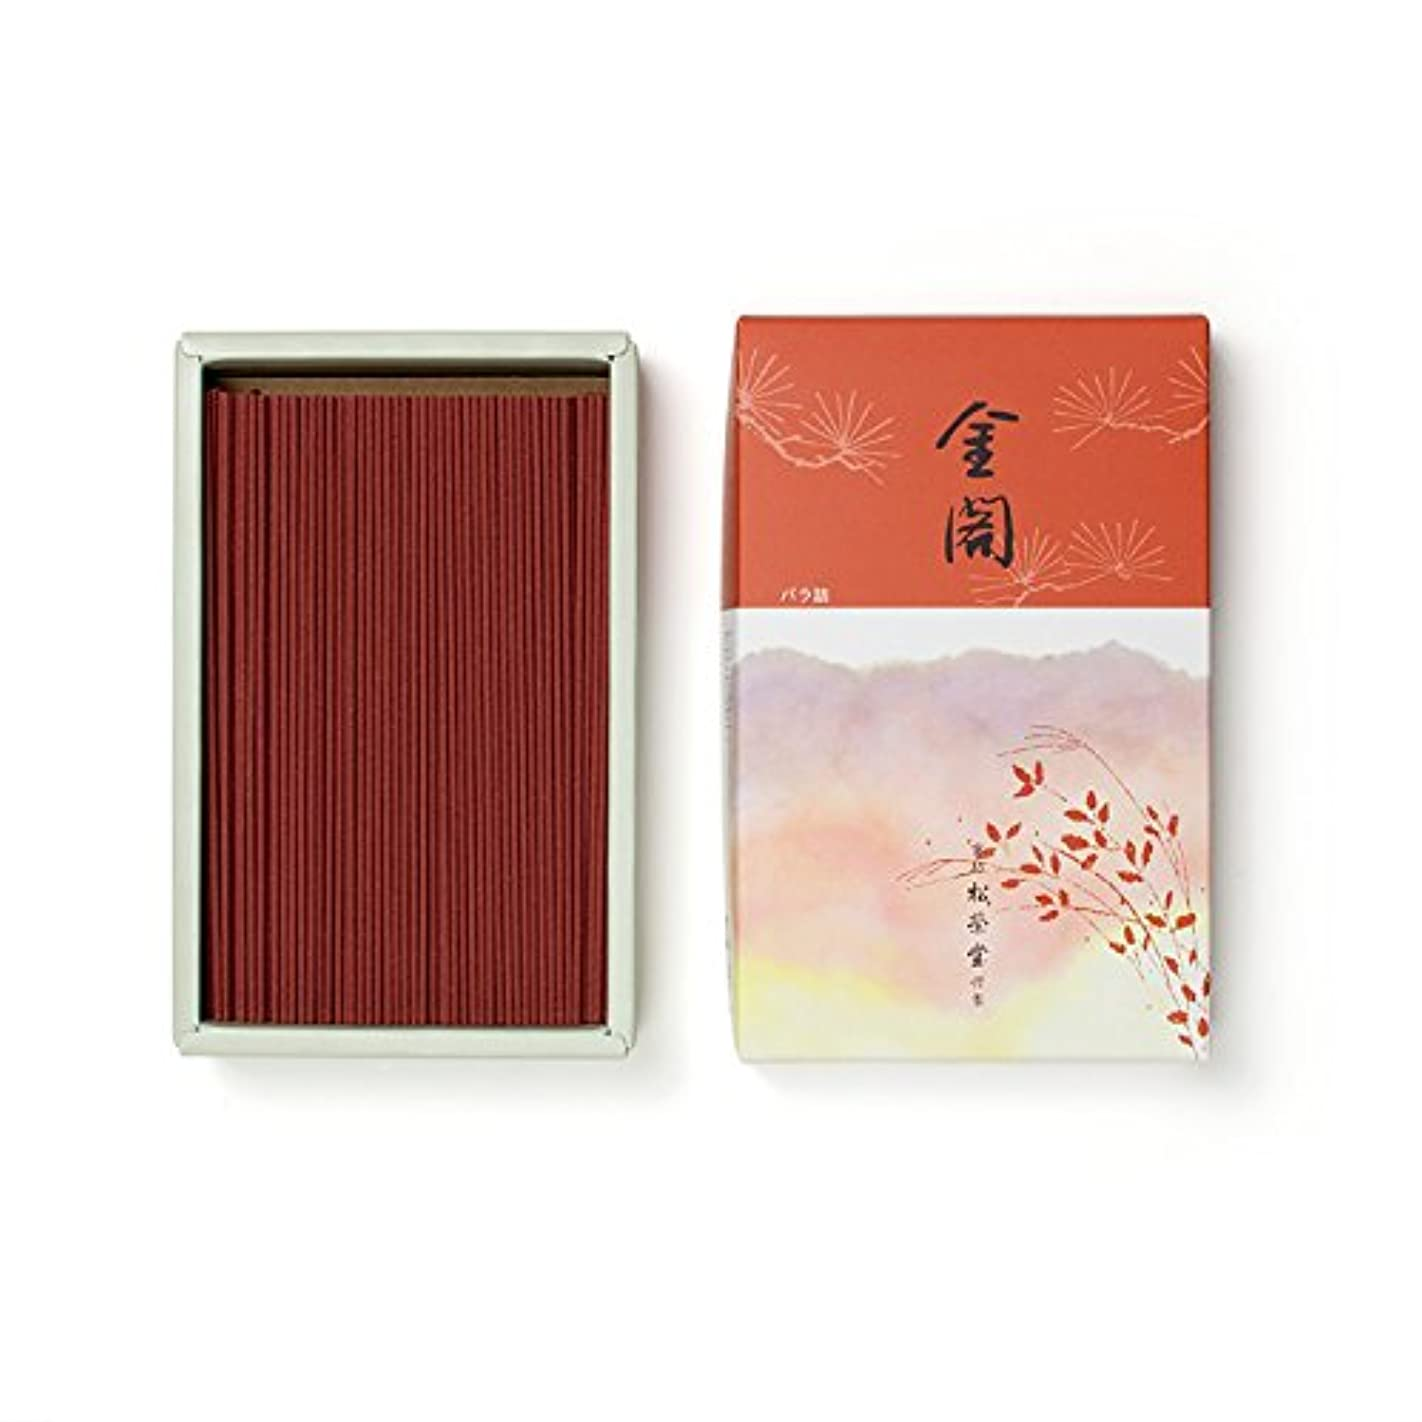 衝動エネルギー曲線Shoyeido's Golden Pavilion Incense 450 Sticks - Kin-kaku, New.